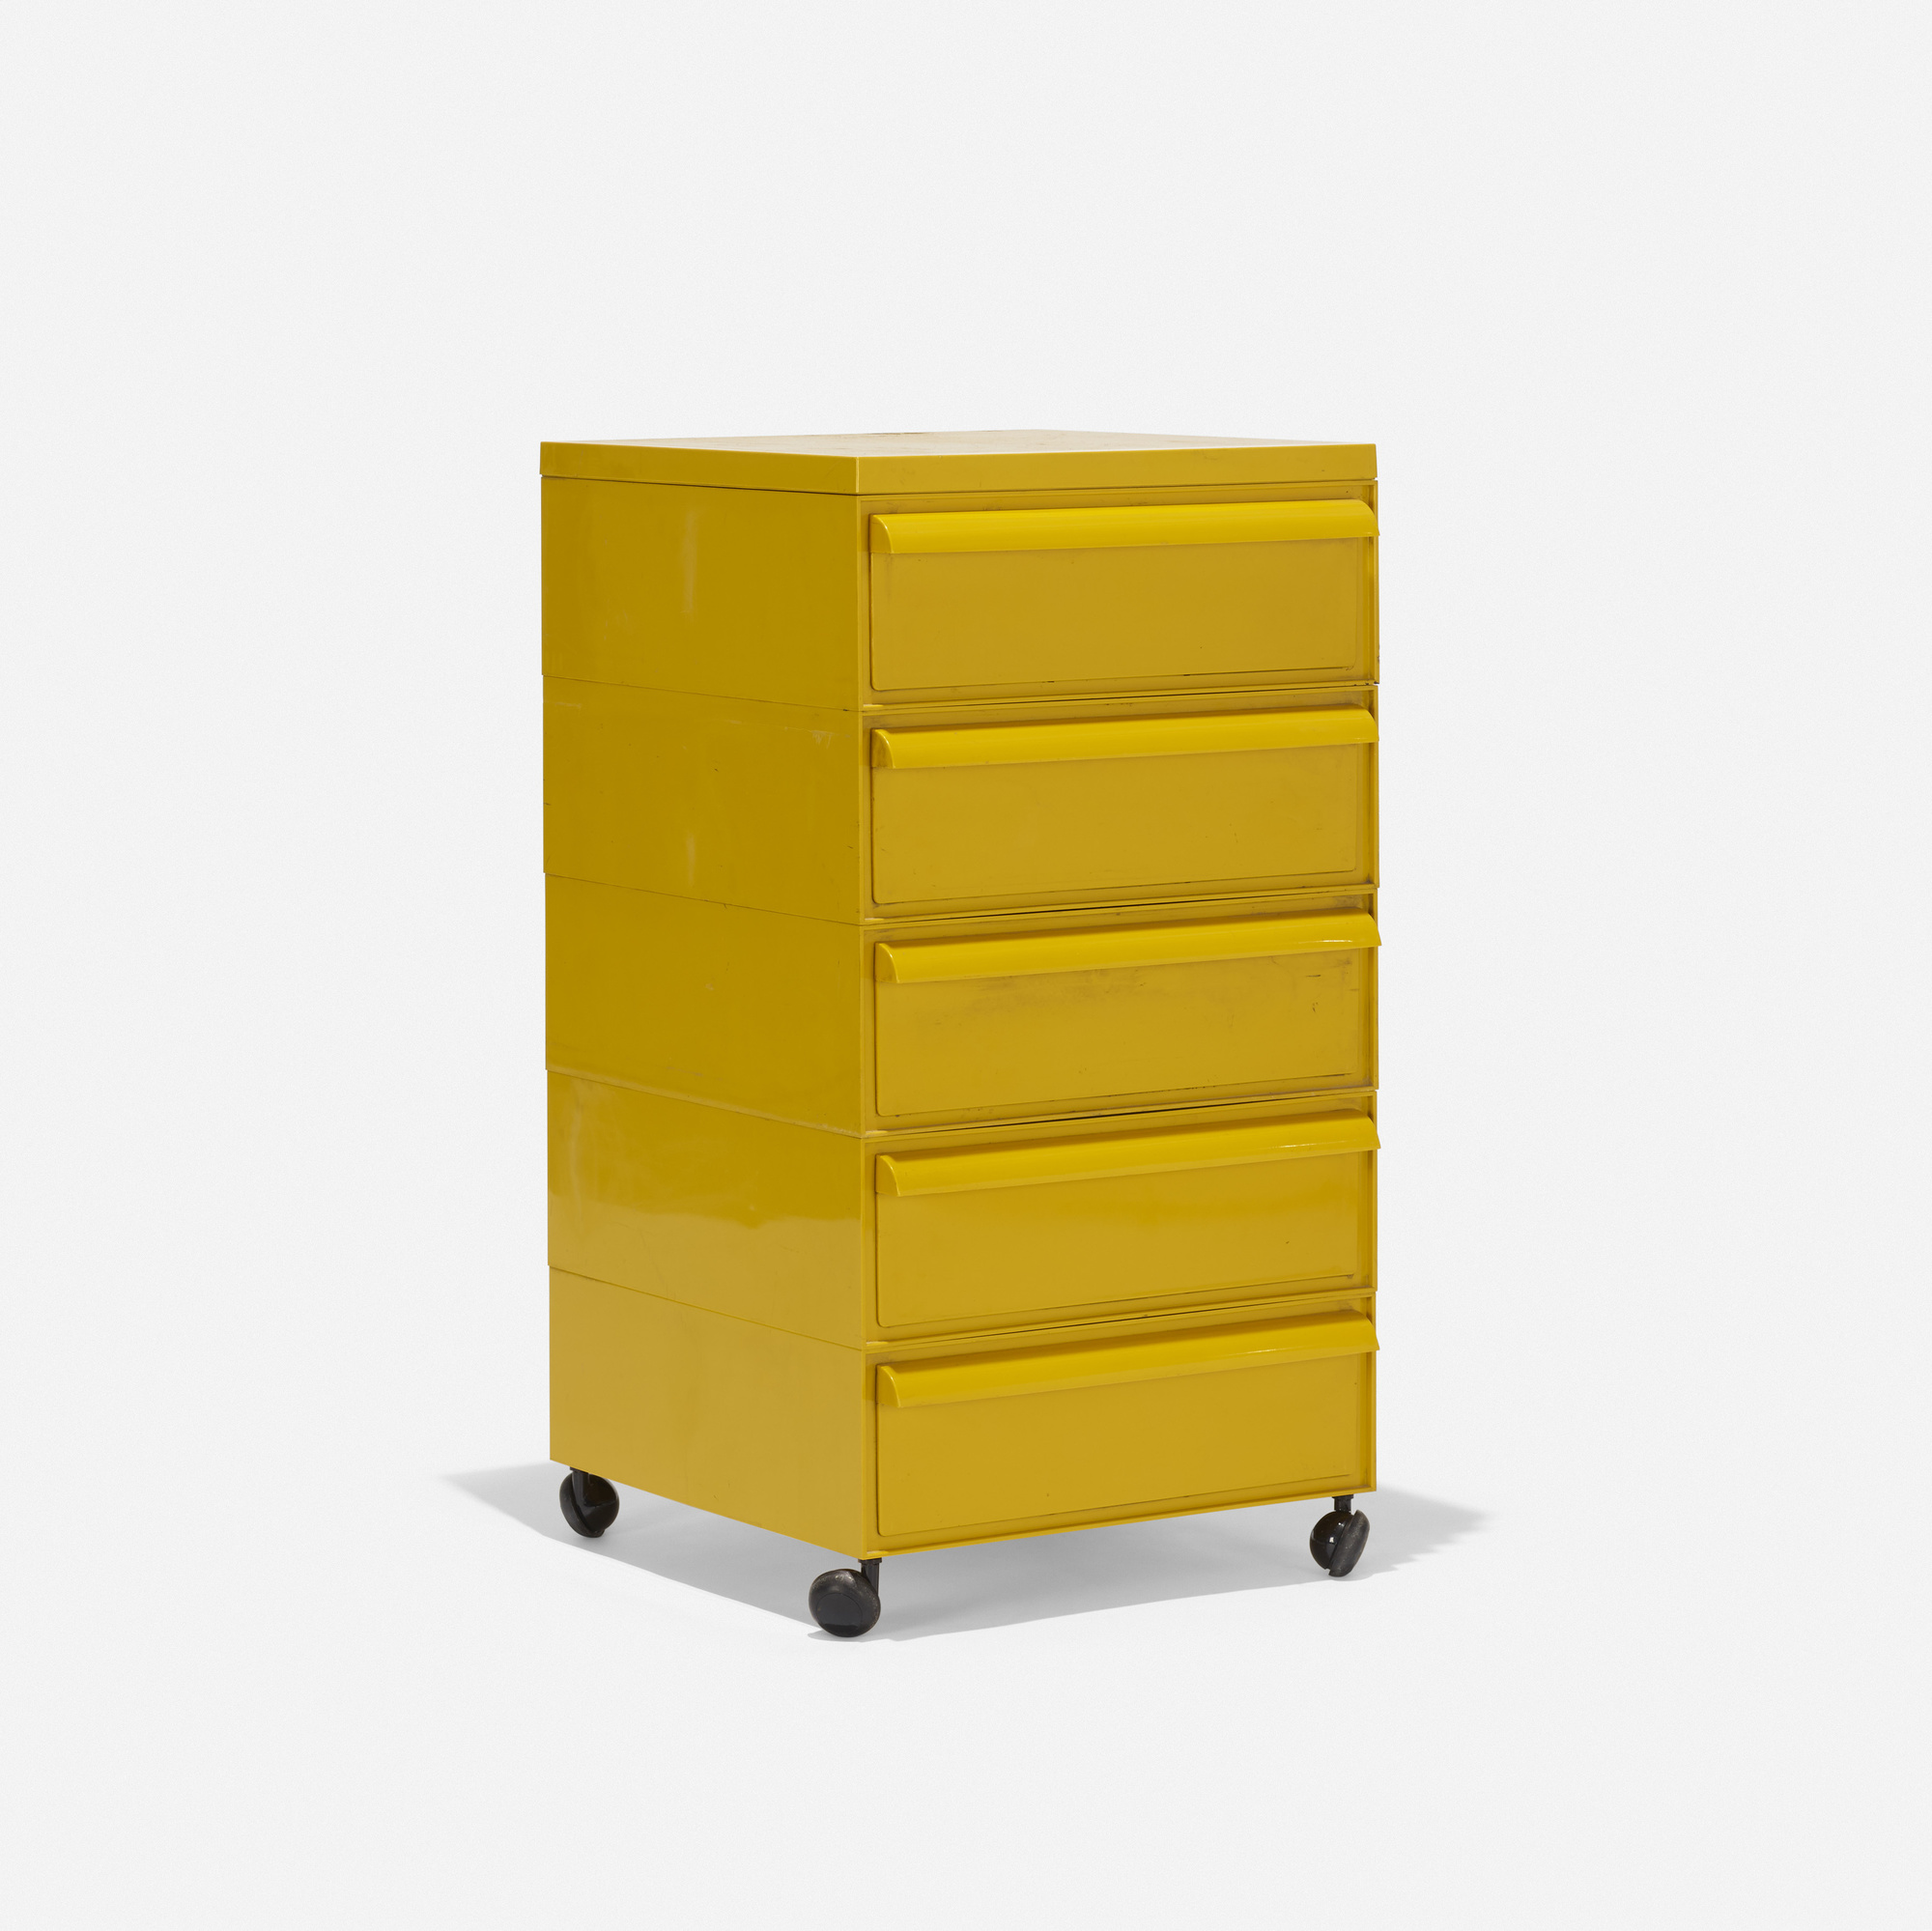 174: Simon Fussell / Stacking Drawer cabinet, model 4601 (1 of 1)